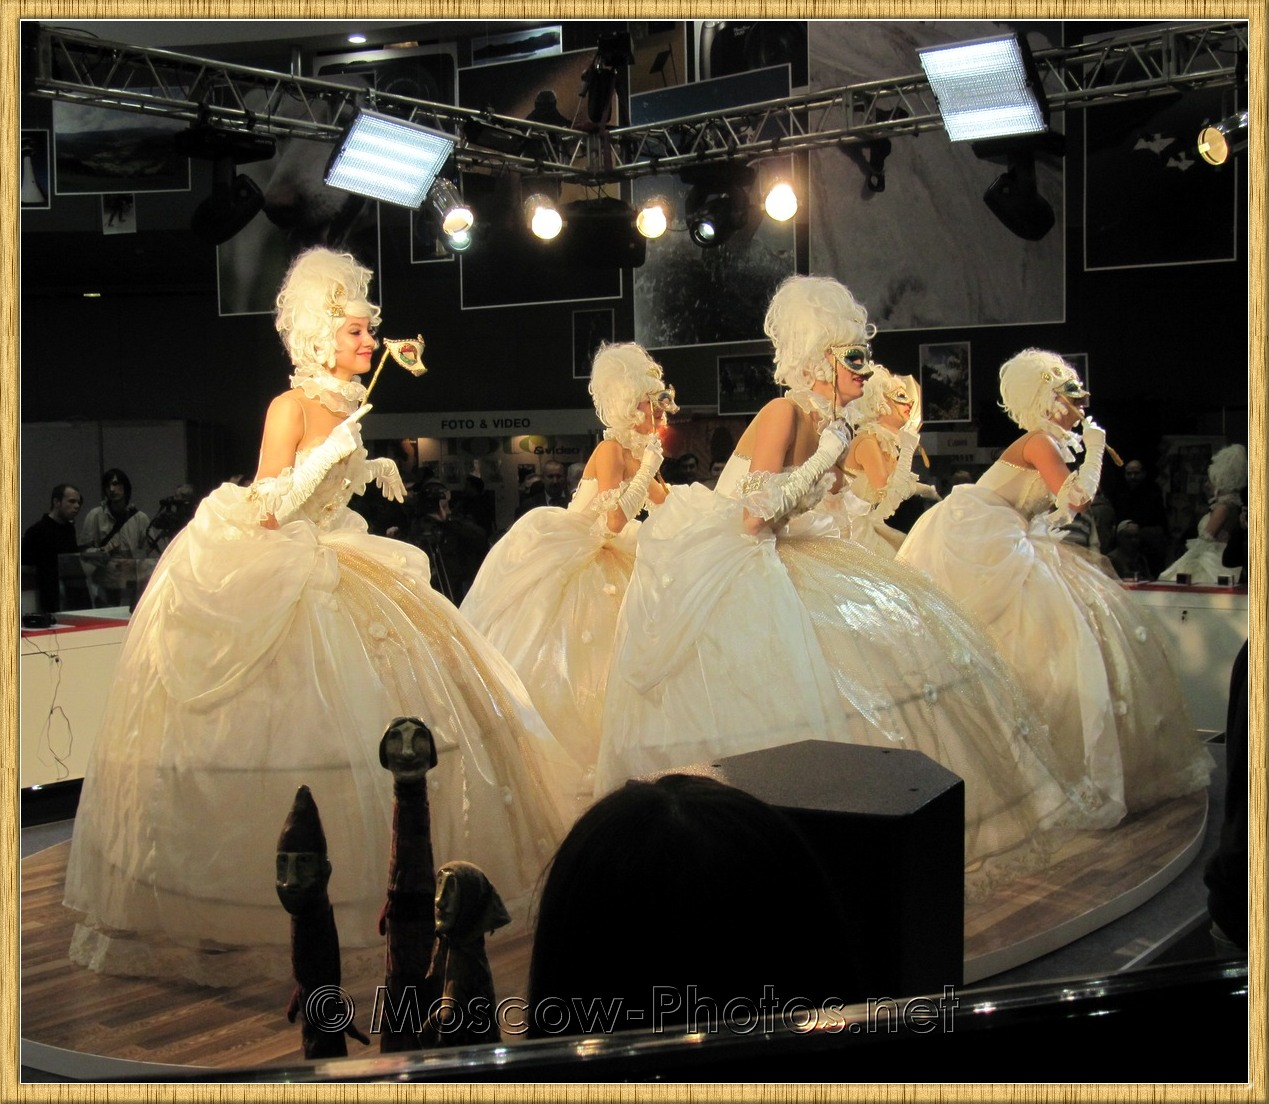 Dancing girls in white ball gowns at Photoforum 2010